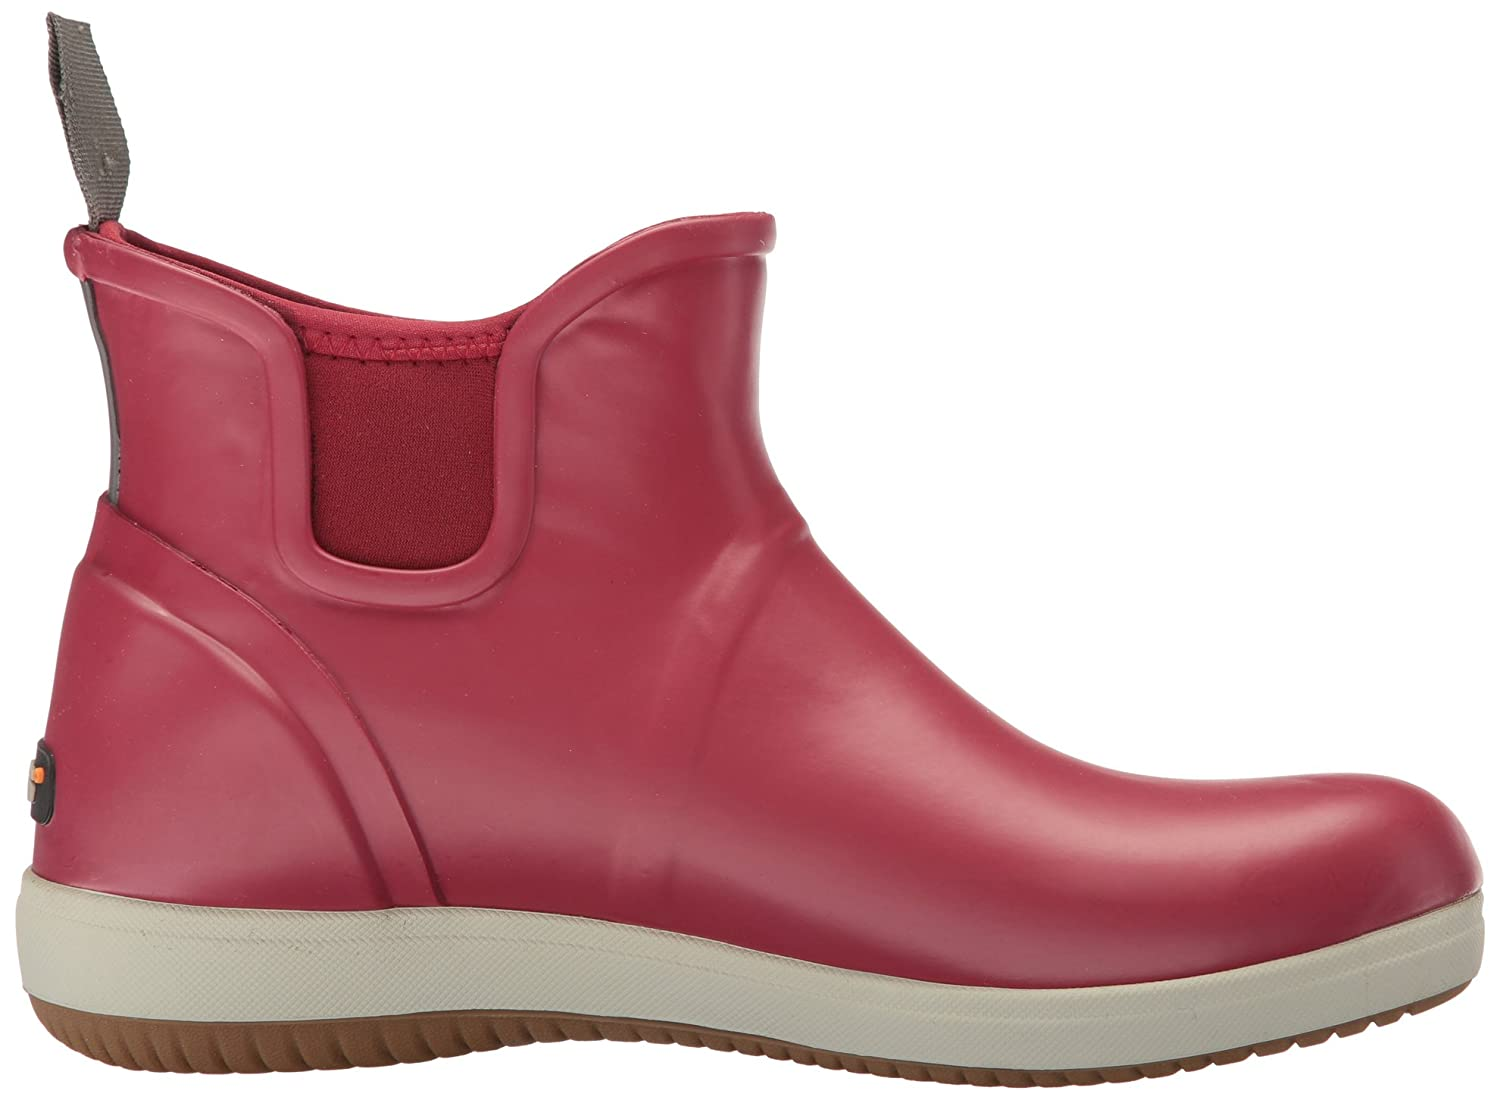 Bogs Women's Quinn Slip on Rain Boot B01J6OU6DQ 10 B(M) US|Brick